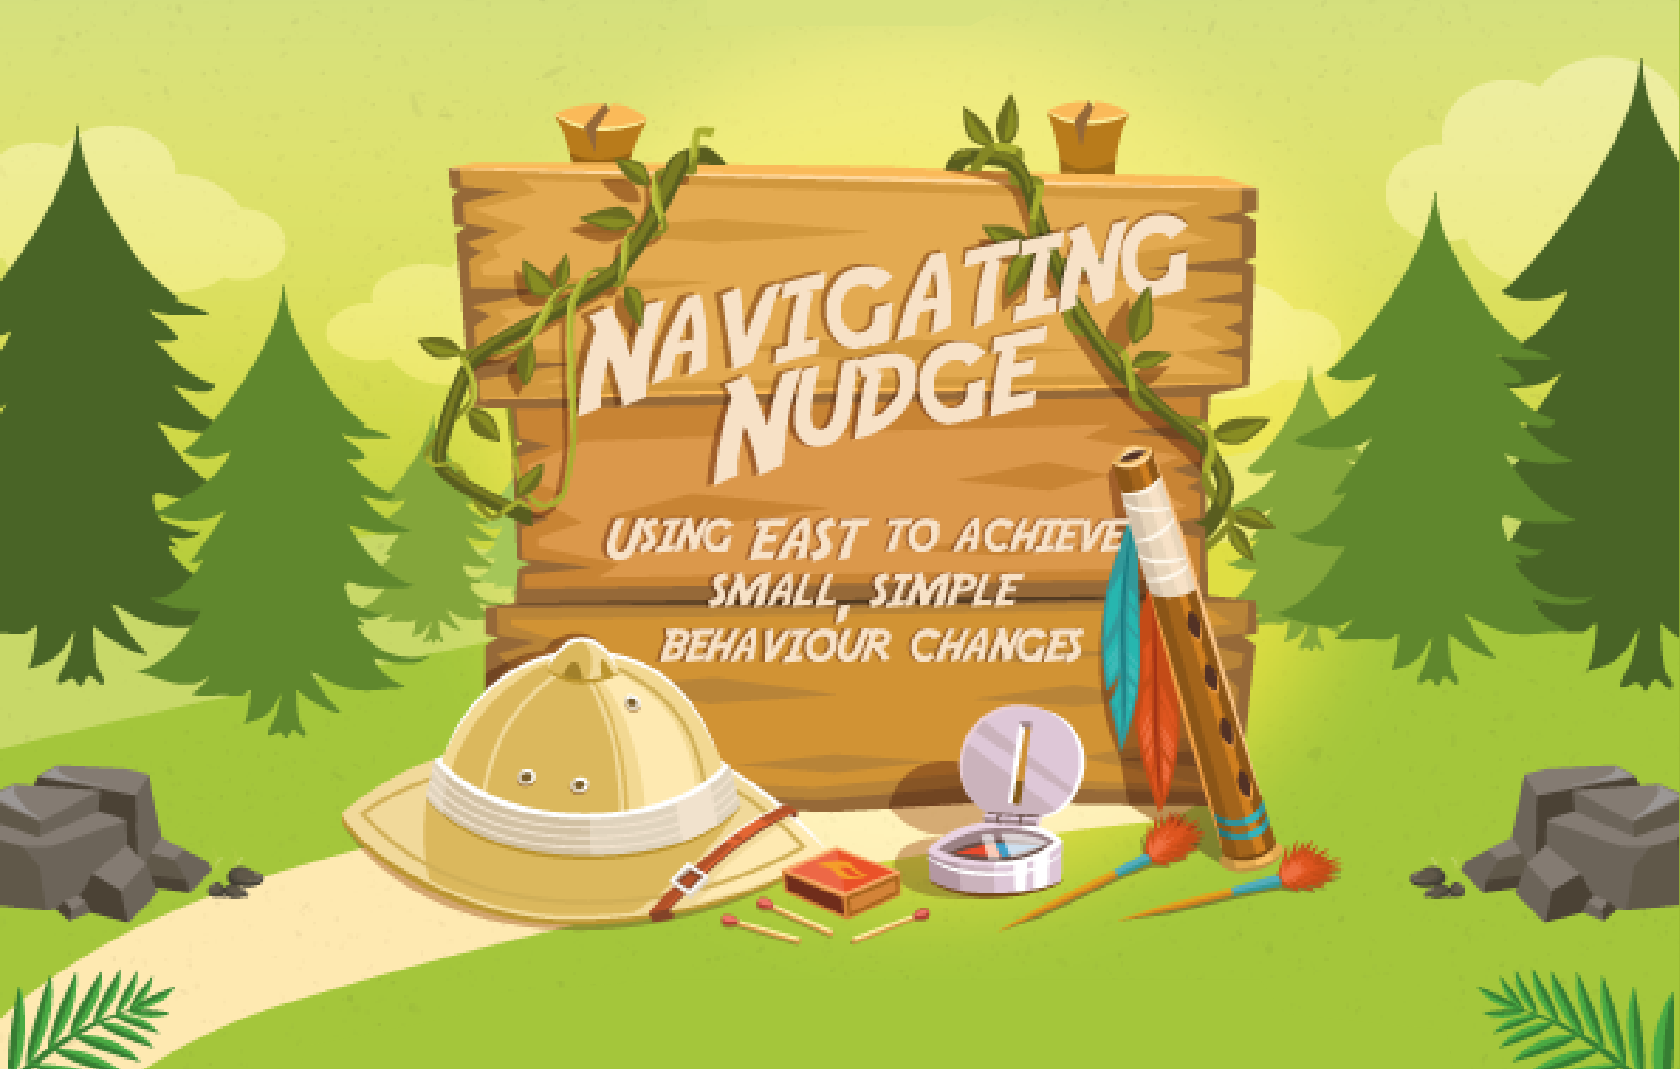 Alive With Ideas - Navigating Nudge Infographic